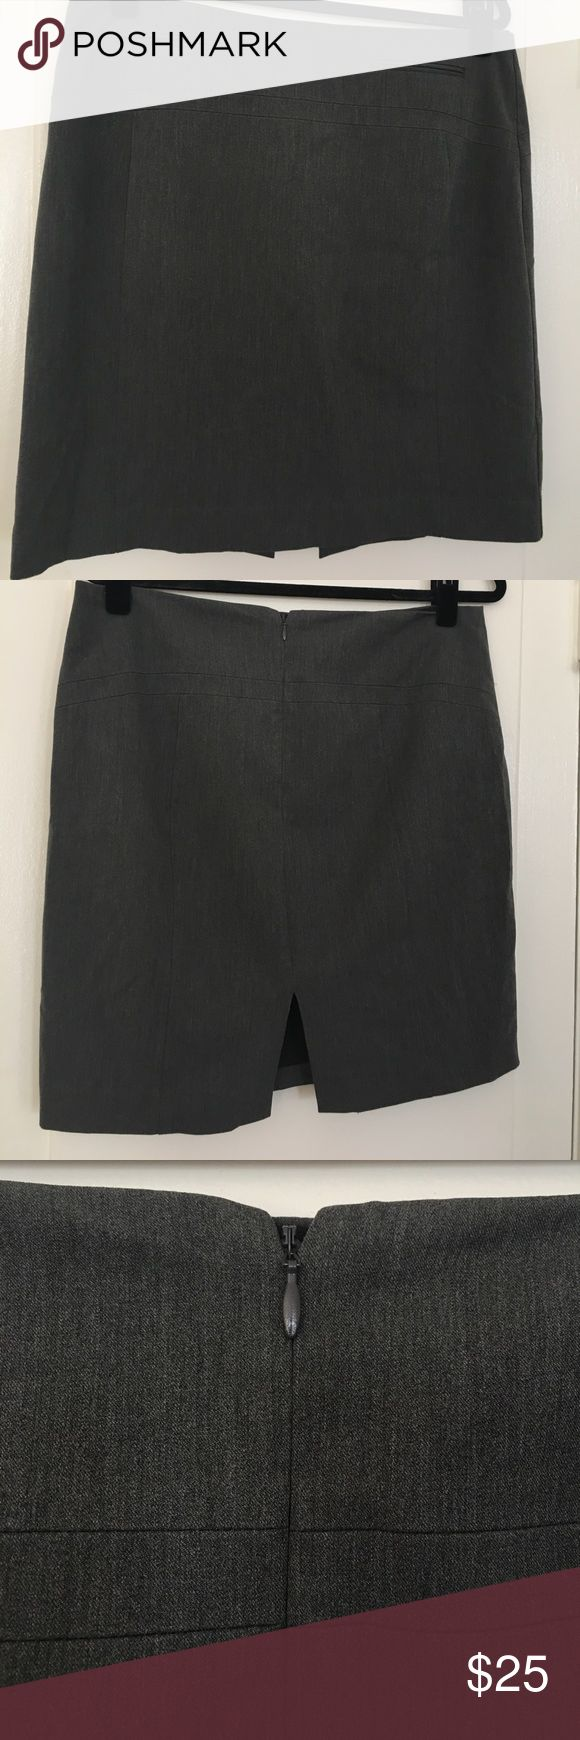 Express Charcoal Gray Pencil Skirt Charcoal grey pencil skirt from Express in size 10.  In great condition worn only a handful of times.  Perfect for work! Express Skirts Pencil